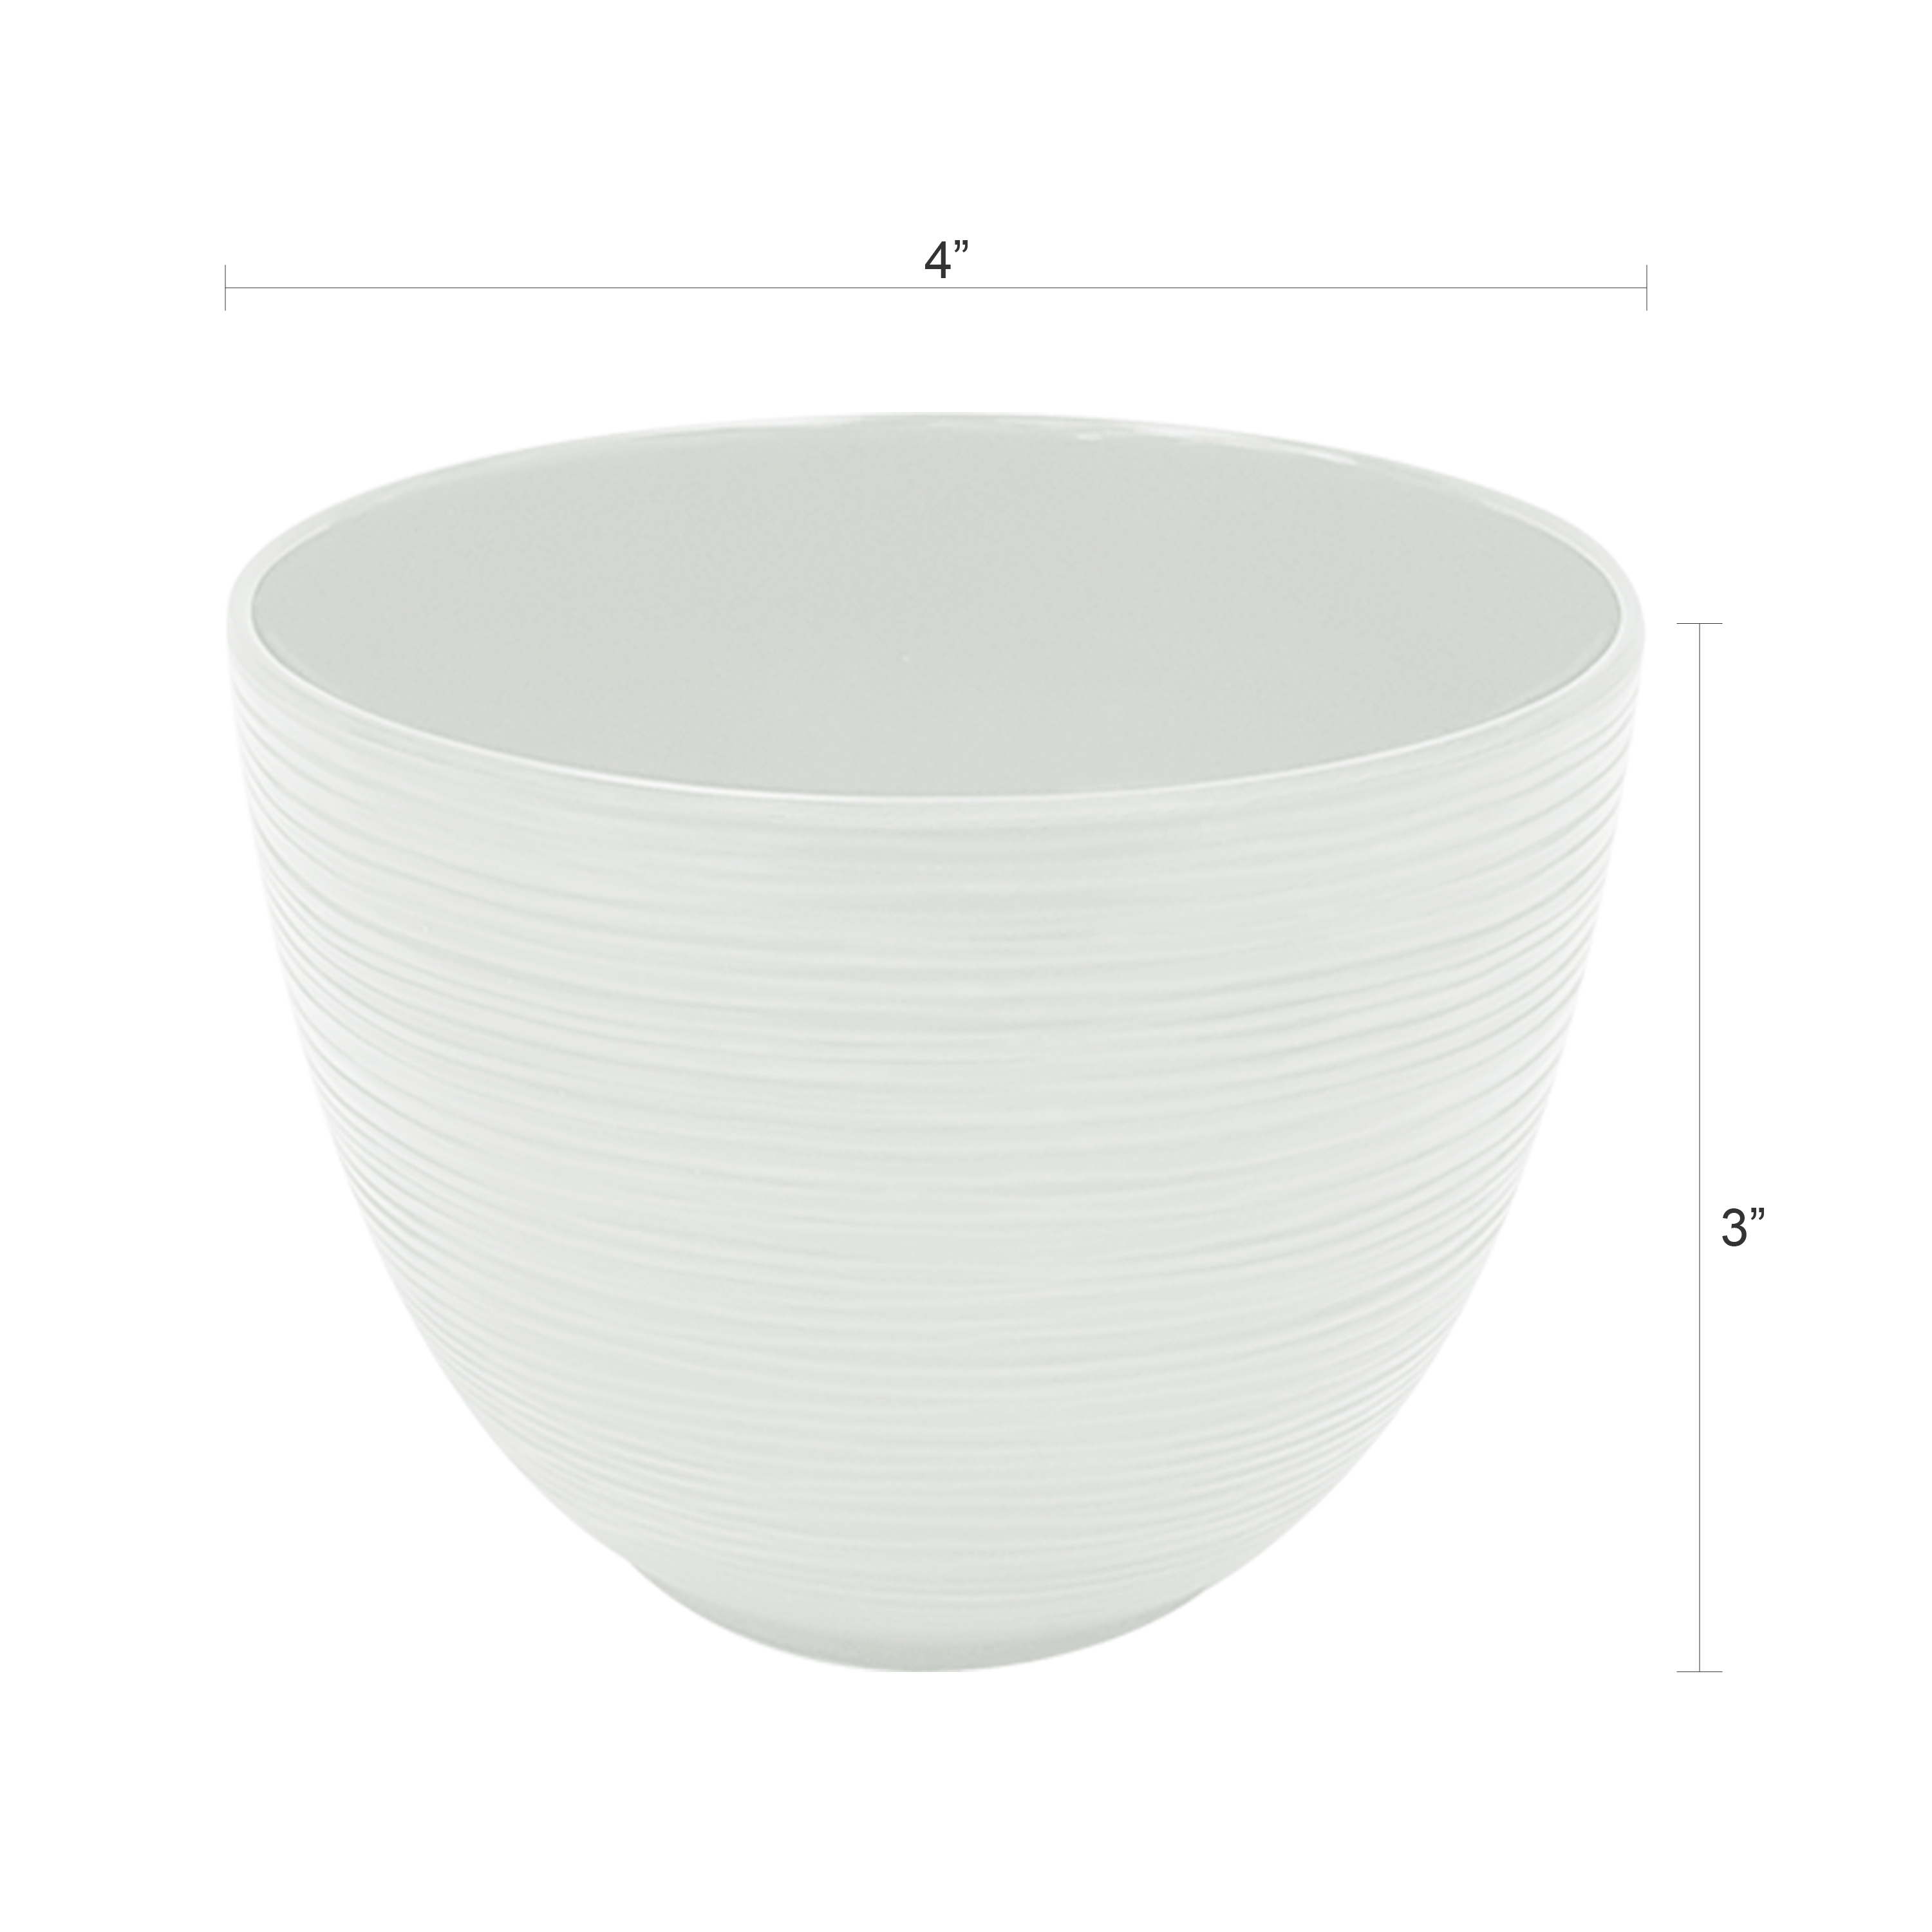 Zak Style Serving and Dip Bowls, Assorted Colors, 4-piece set slideshow image 3